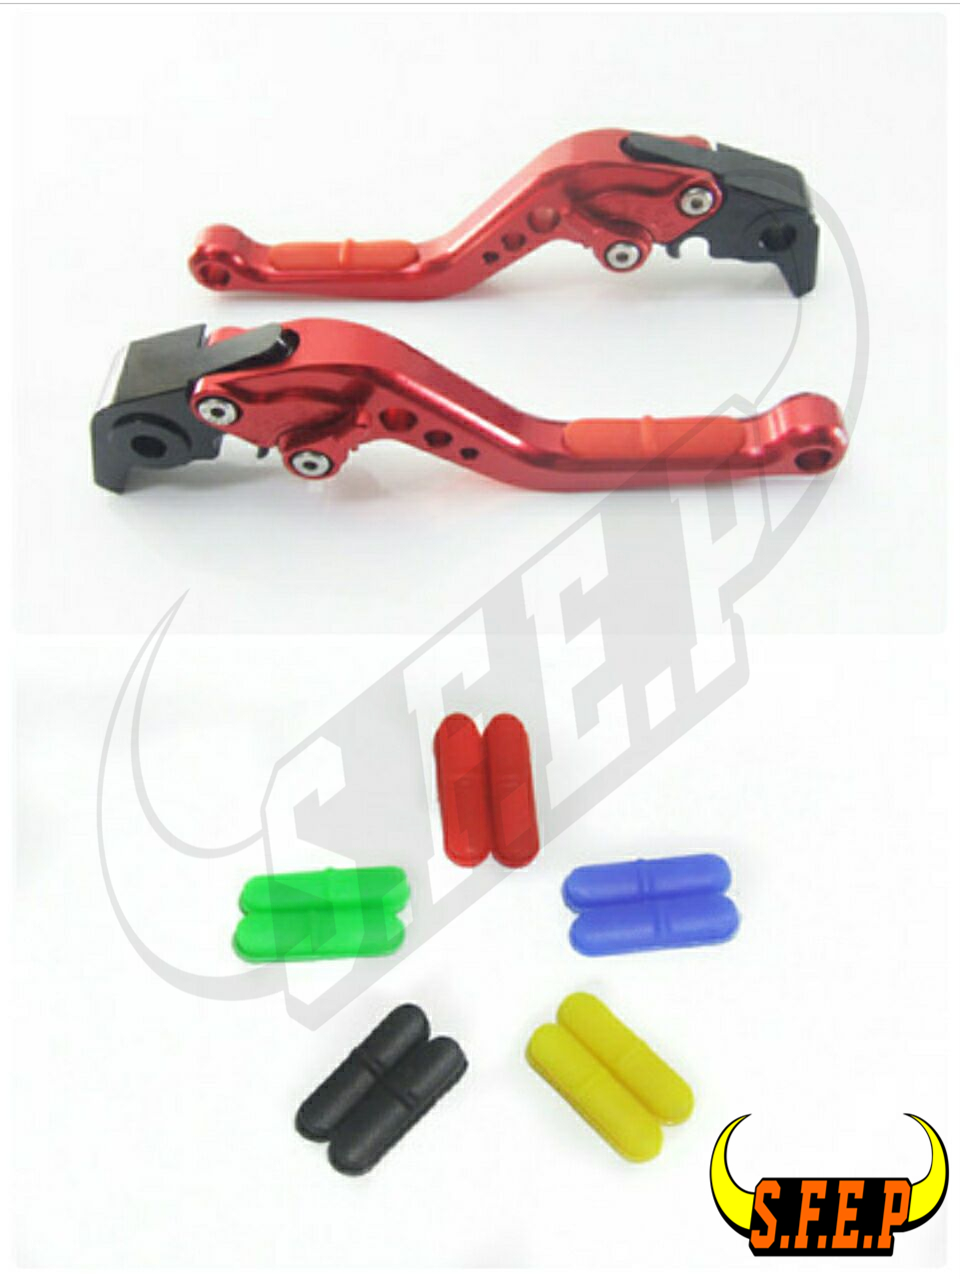 CNC Adjustable Motorcycle Brake and Clutch Levers with Anti-Slip For Kawasaki ZZR/ZX1400 SE Version 2016-2018 adjustable long folding clutch brake levers for kawasaki zx1400 zx14r zx 1400 11 12 13 14 15 zzr1400 zzr 1400 zx 14r 2014 2015